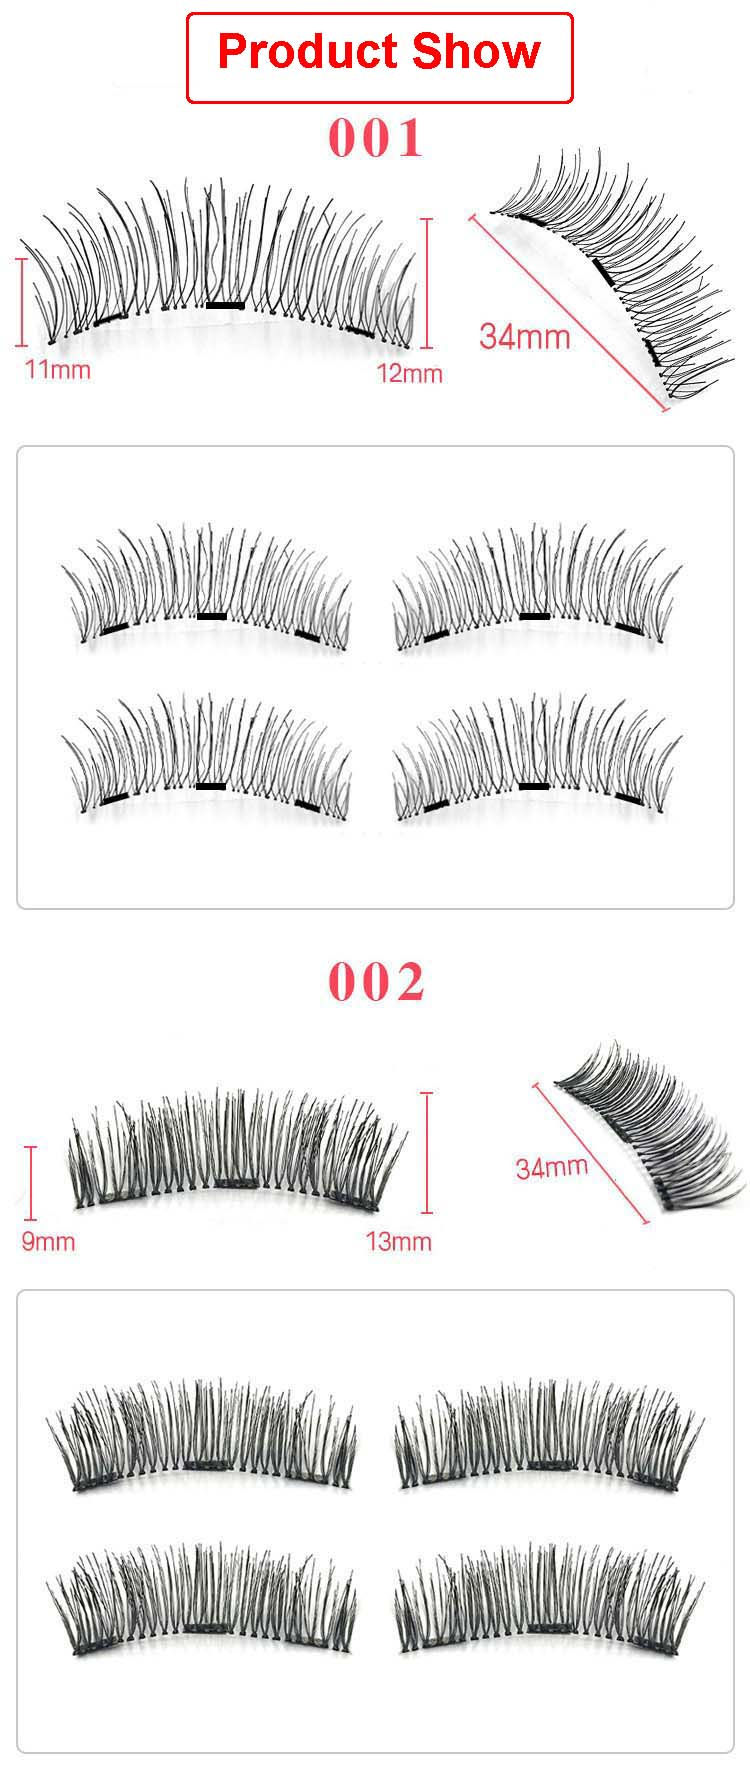 ROMANTIC BEAR High-grade Fiber Magnetic Eyelash Hand made 3 Magnet Fake Lashes Full Strip 120sets/lot DHL Free